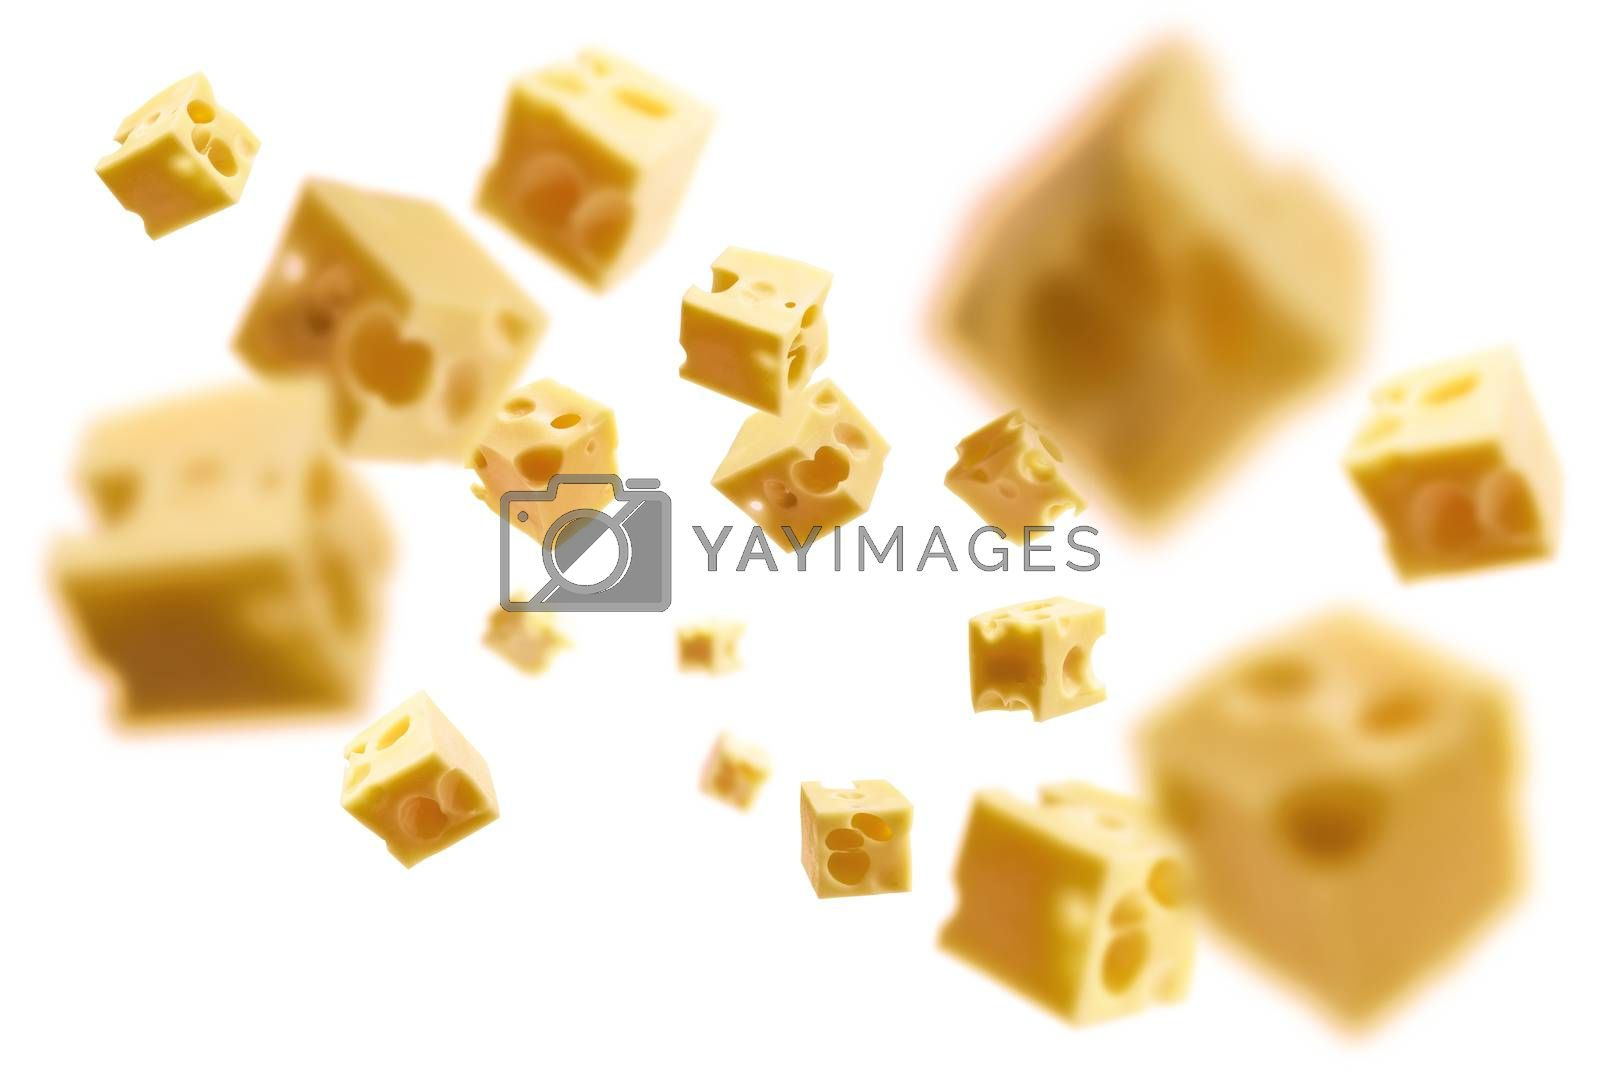 Cheese cubes levitate on a white background.